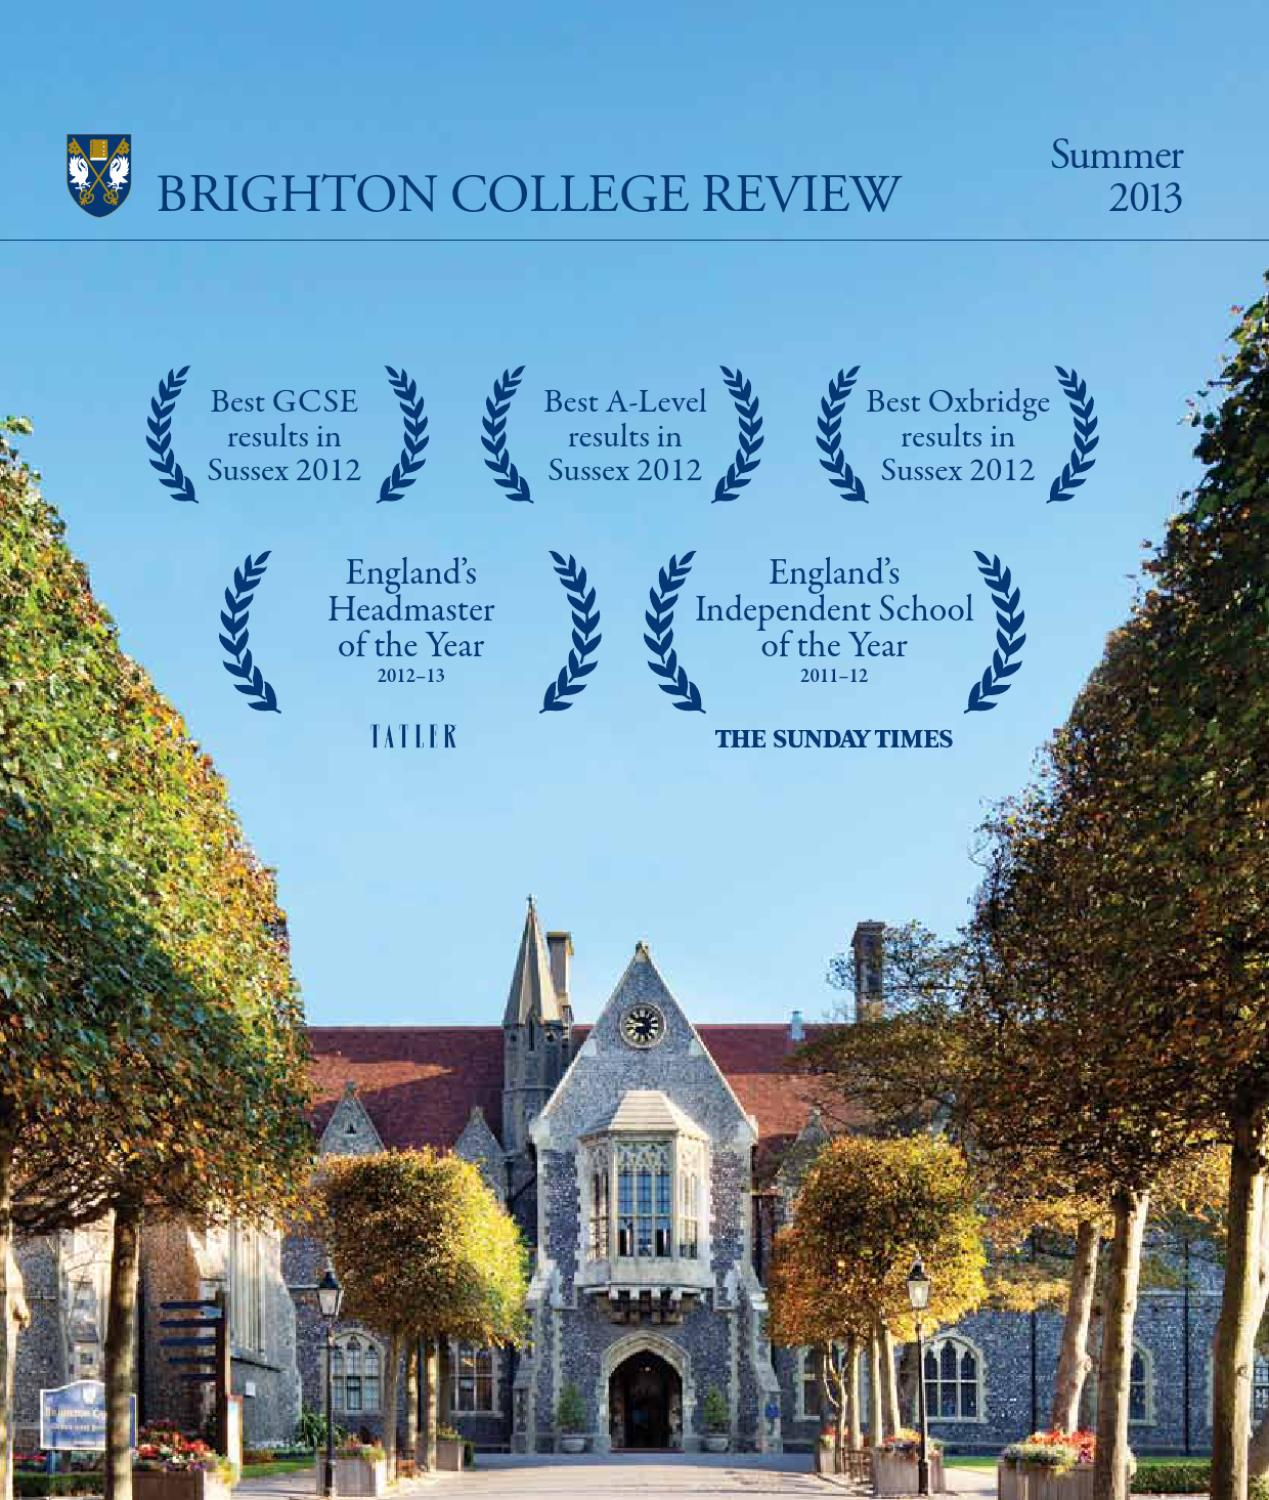 Brighton College Review Summer 2013 by Brighton College - issuu